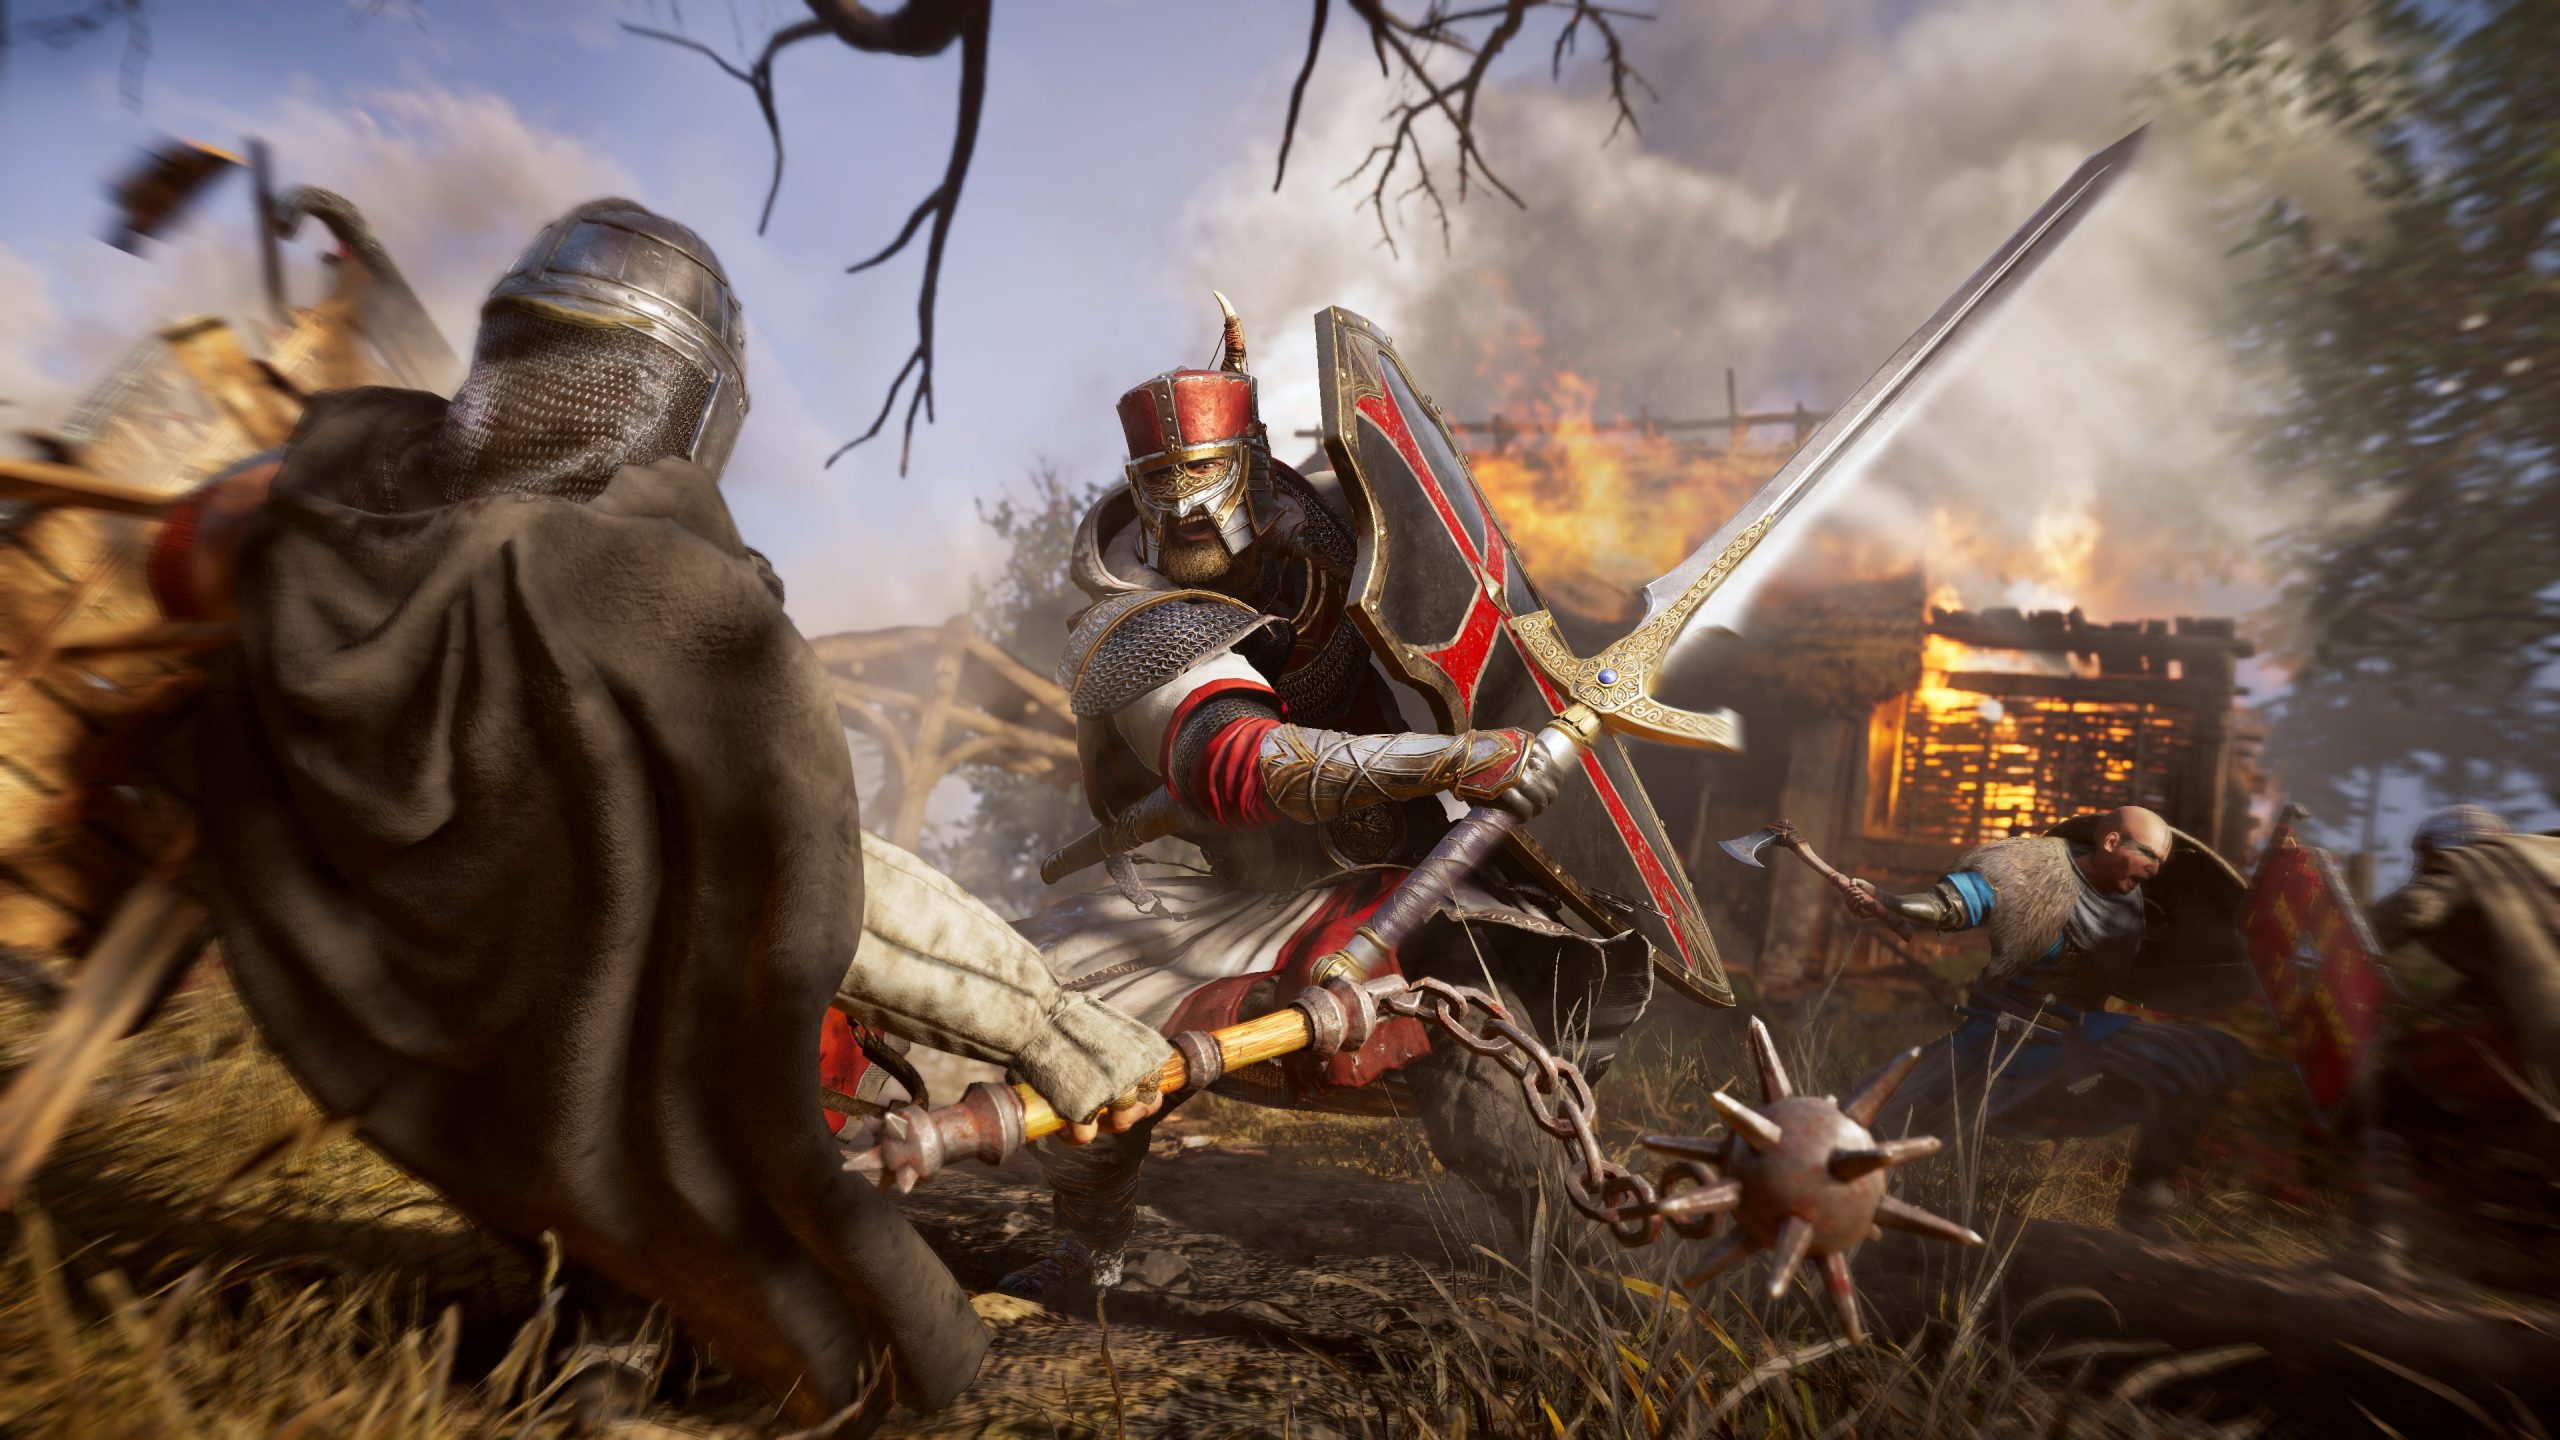 Assassin's Creed Valhalla Introduces New River Raids Mode